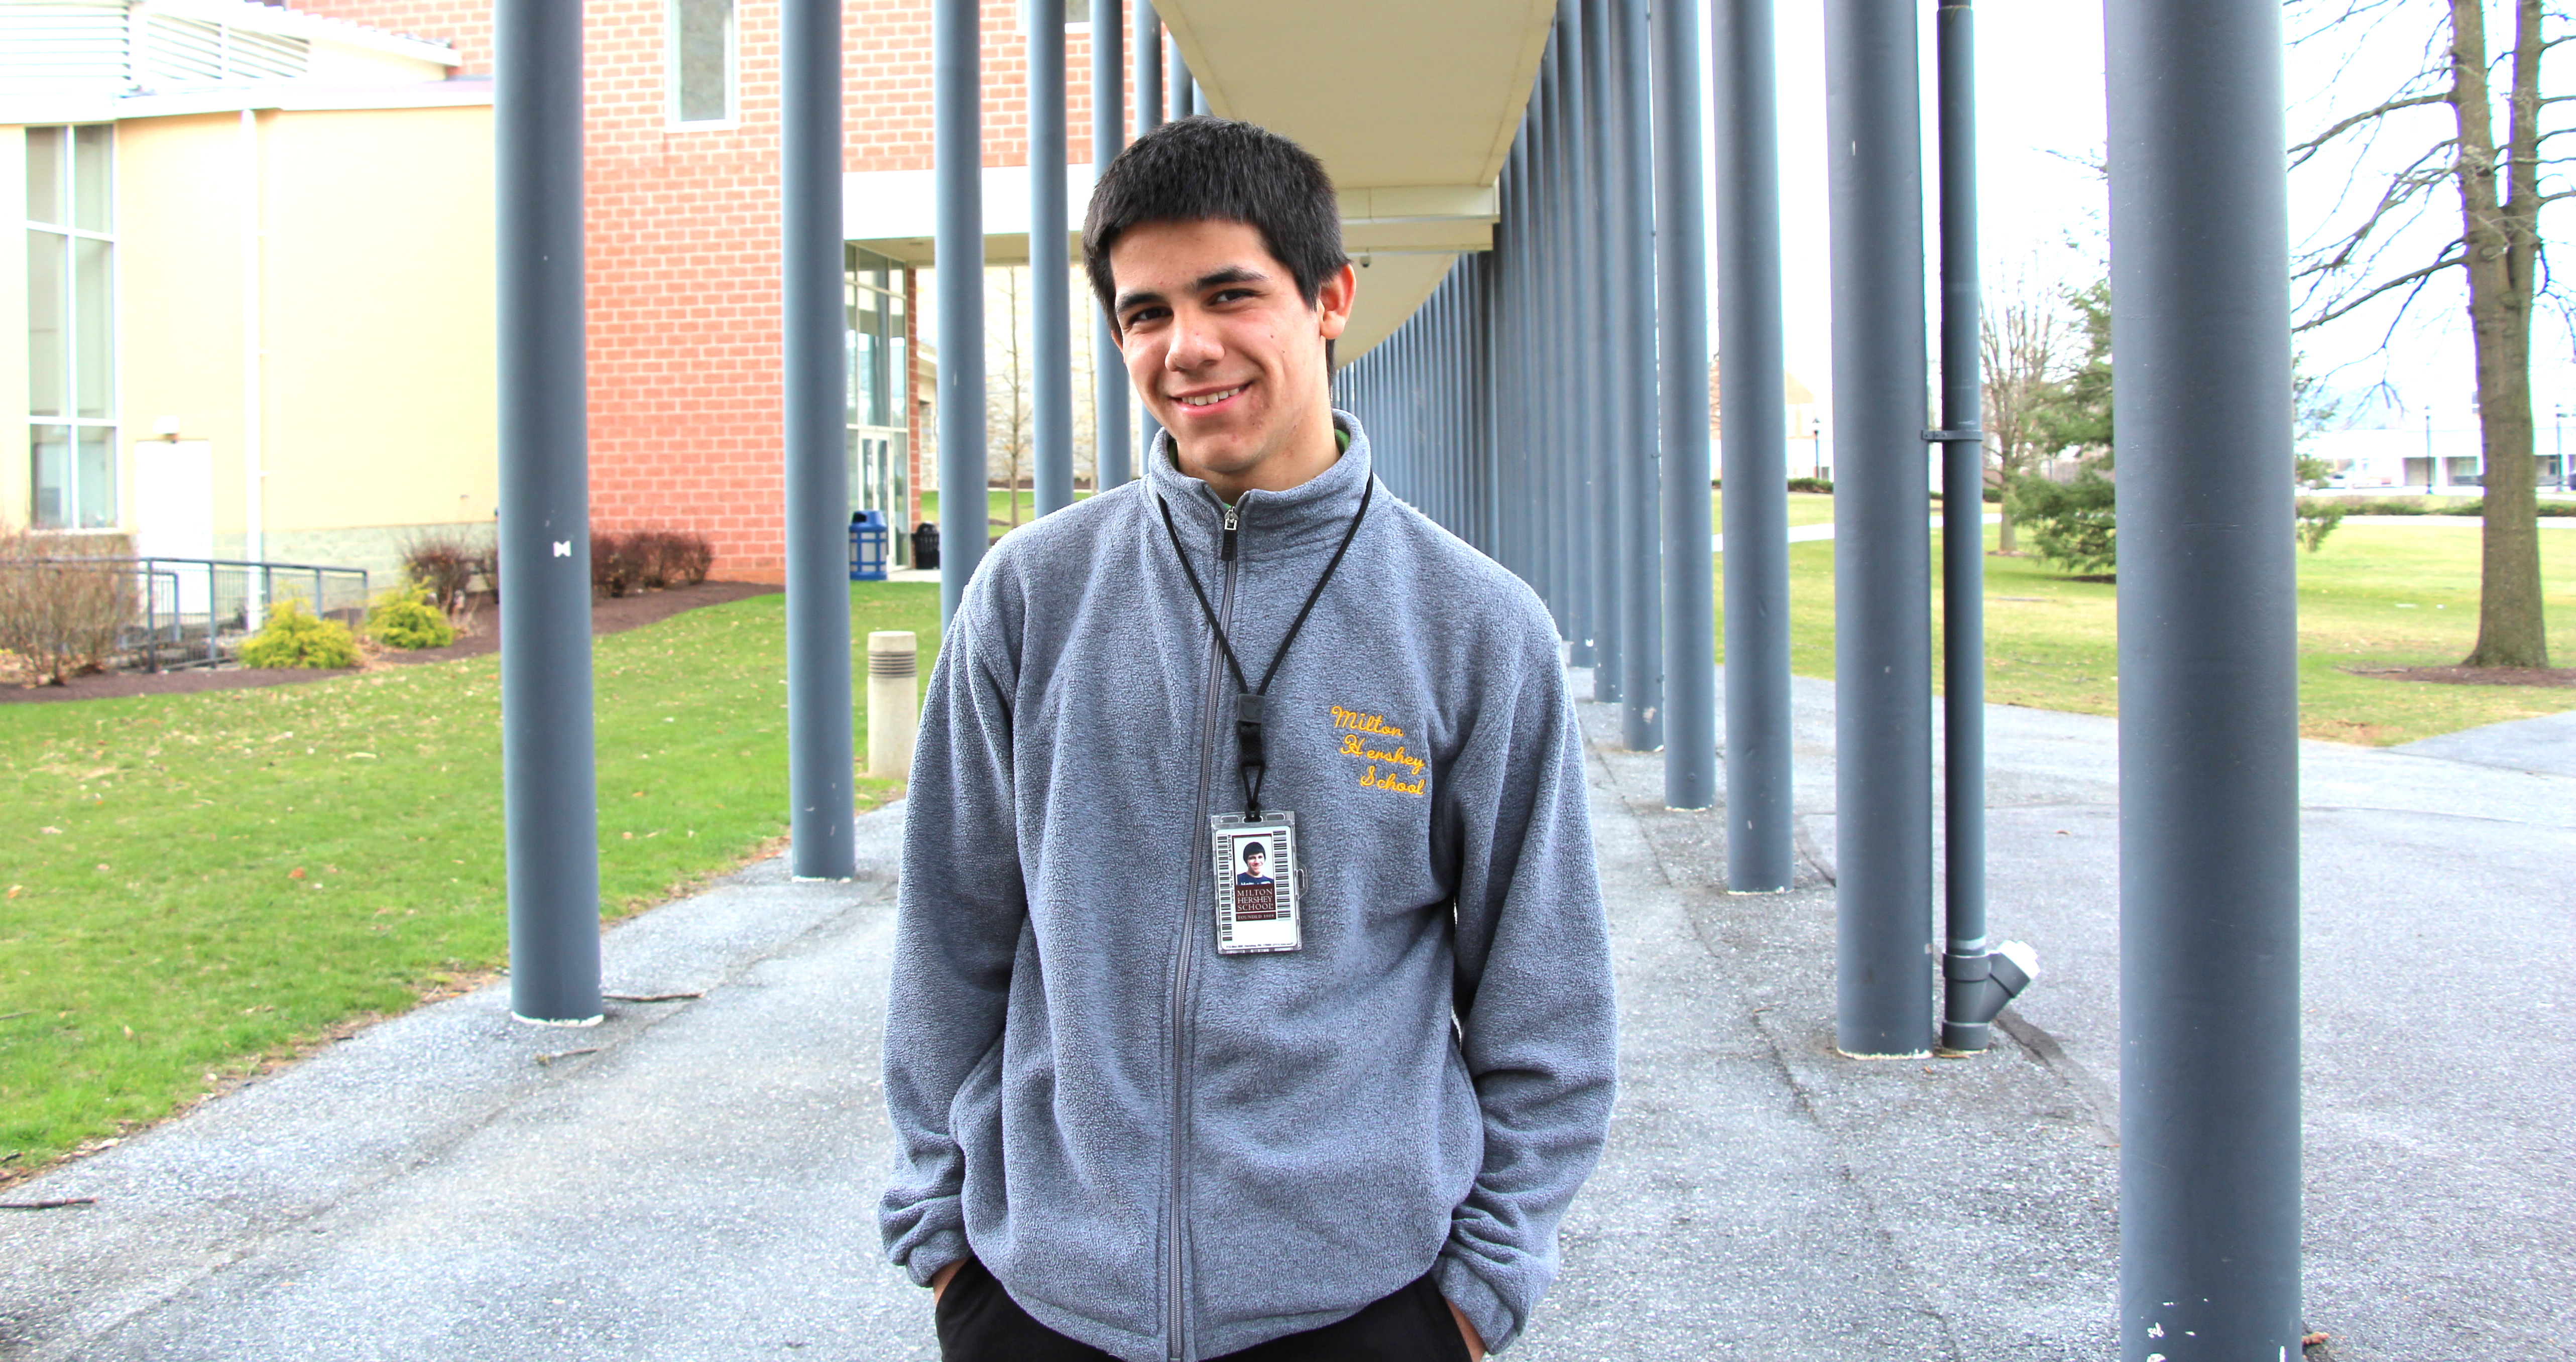 Originally from Middletown, Pennsylvania, Jose remembers feeling a startling lack of hope before enrolling at Milton Hershey School. Health and wellness helped change his mindset.